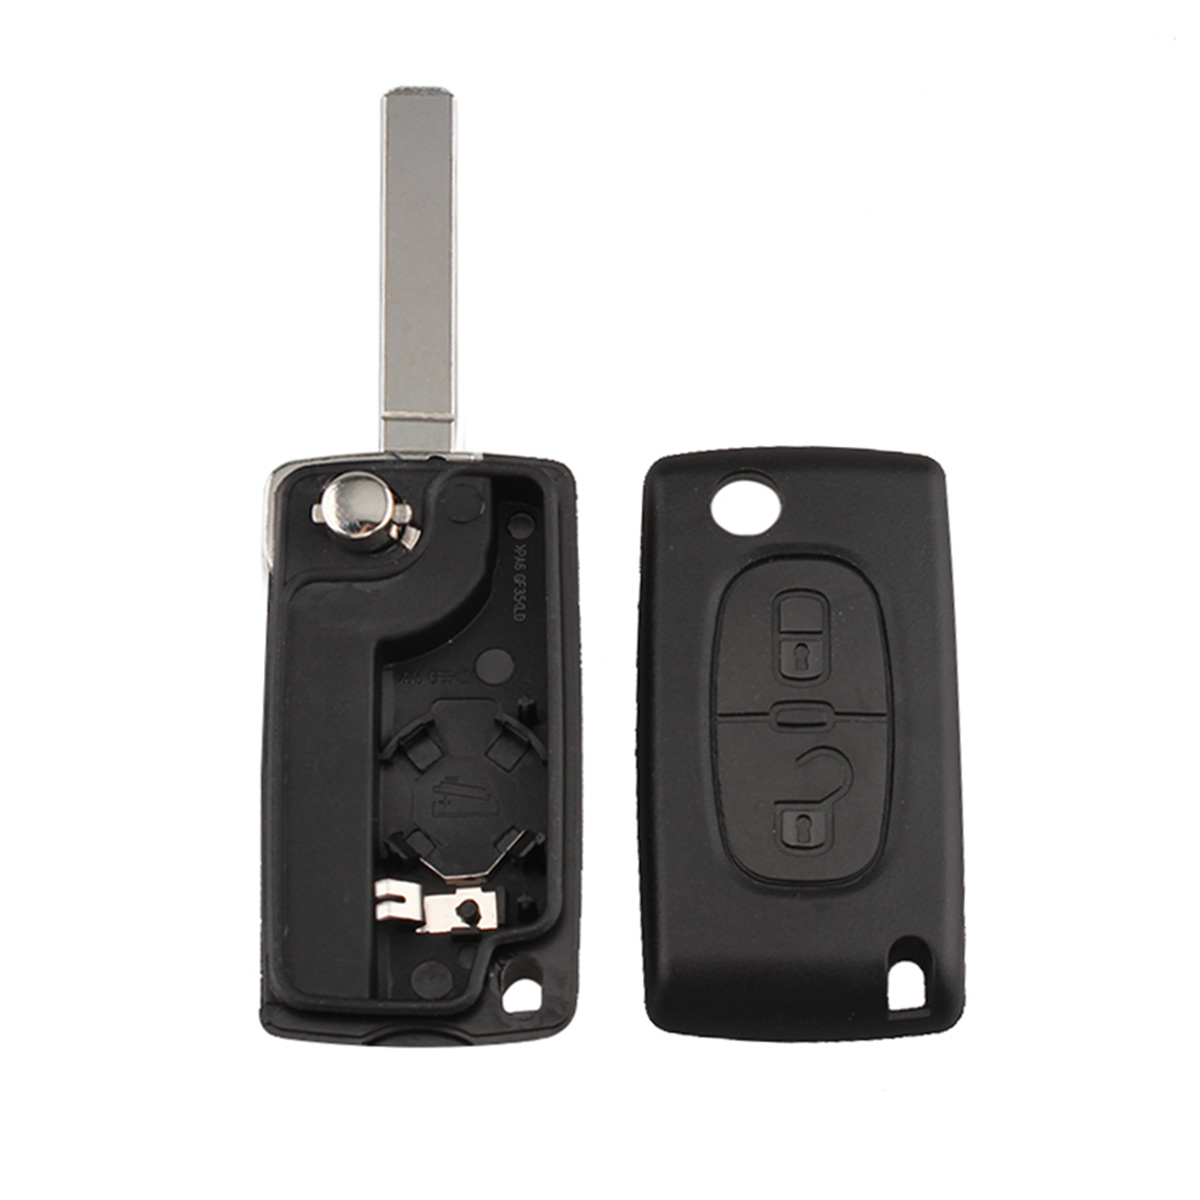 2 Buttons 434MHz ID46 PCF7961 Chip No Groove Folding Replacement Car Remote <font><b>Key</b></font> <font><b>Fob</b></font> For <font><b>Peugeot</b></font> 307 <font><b>3008</b></font> 308 408 VA2 CE0536 image